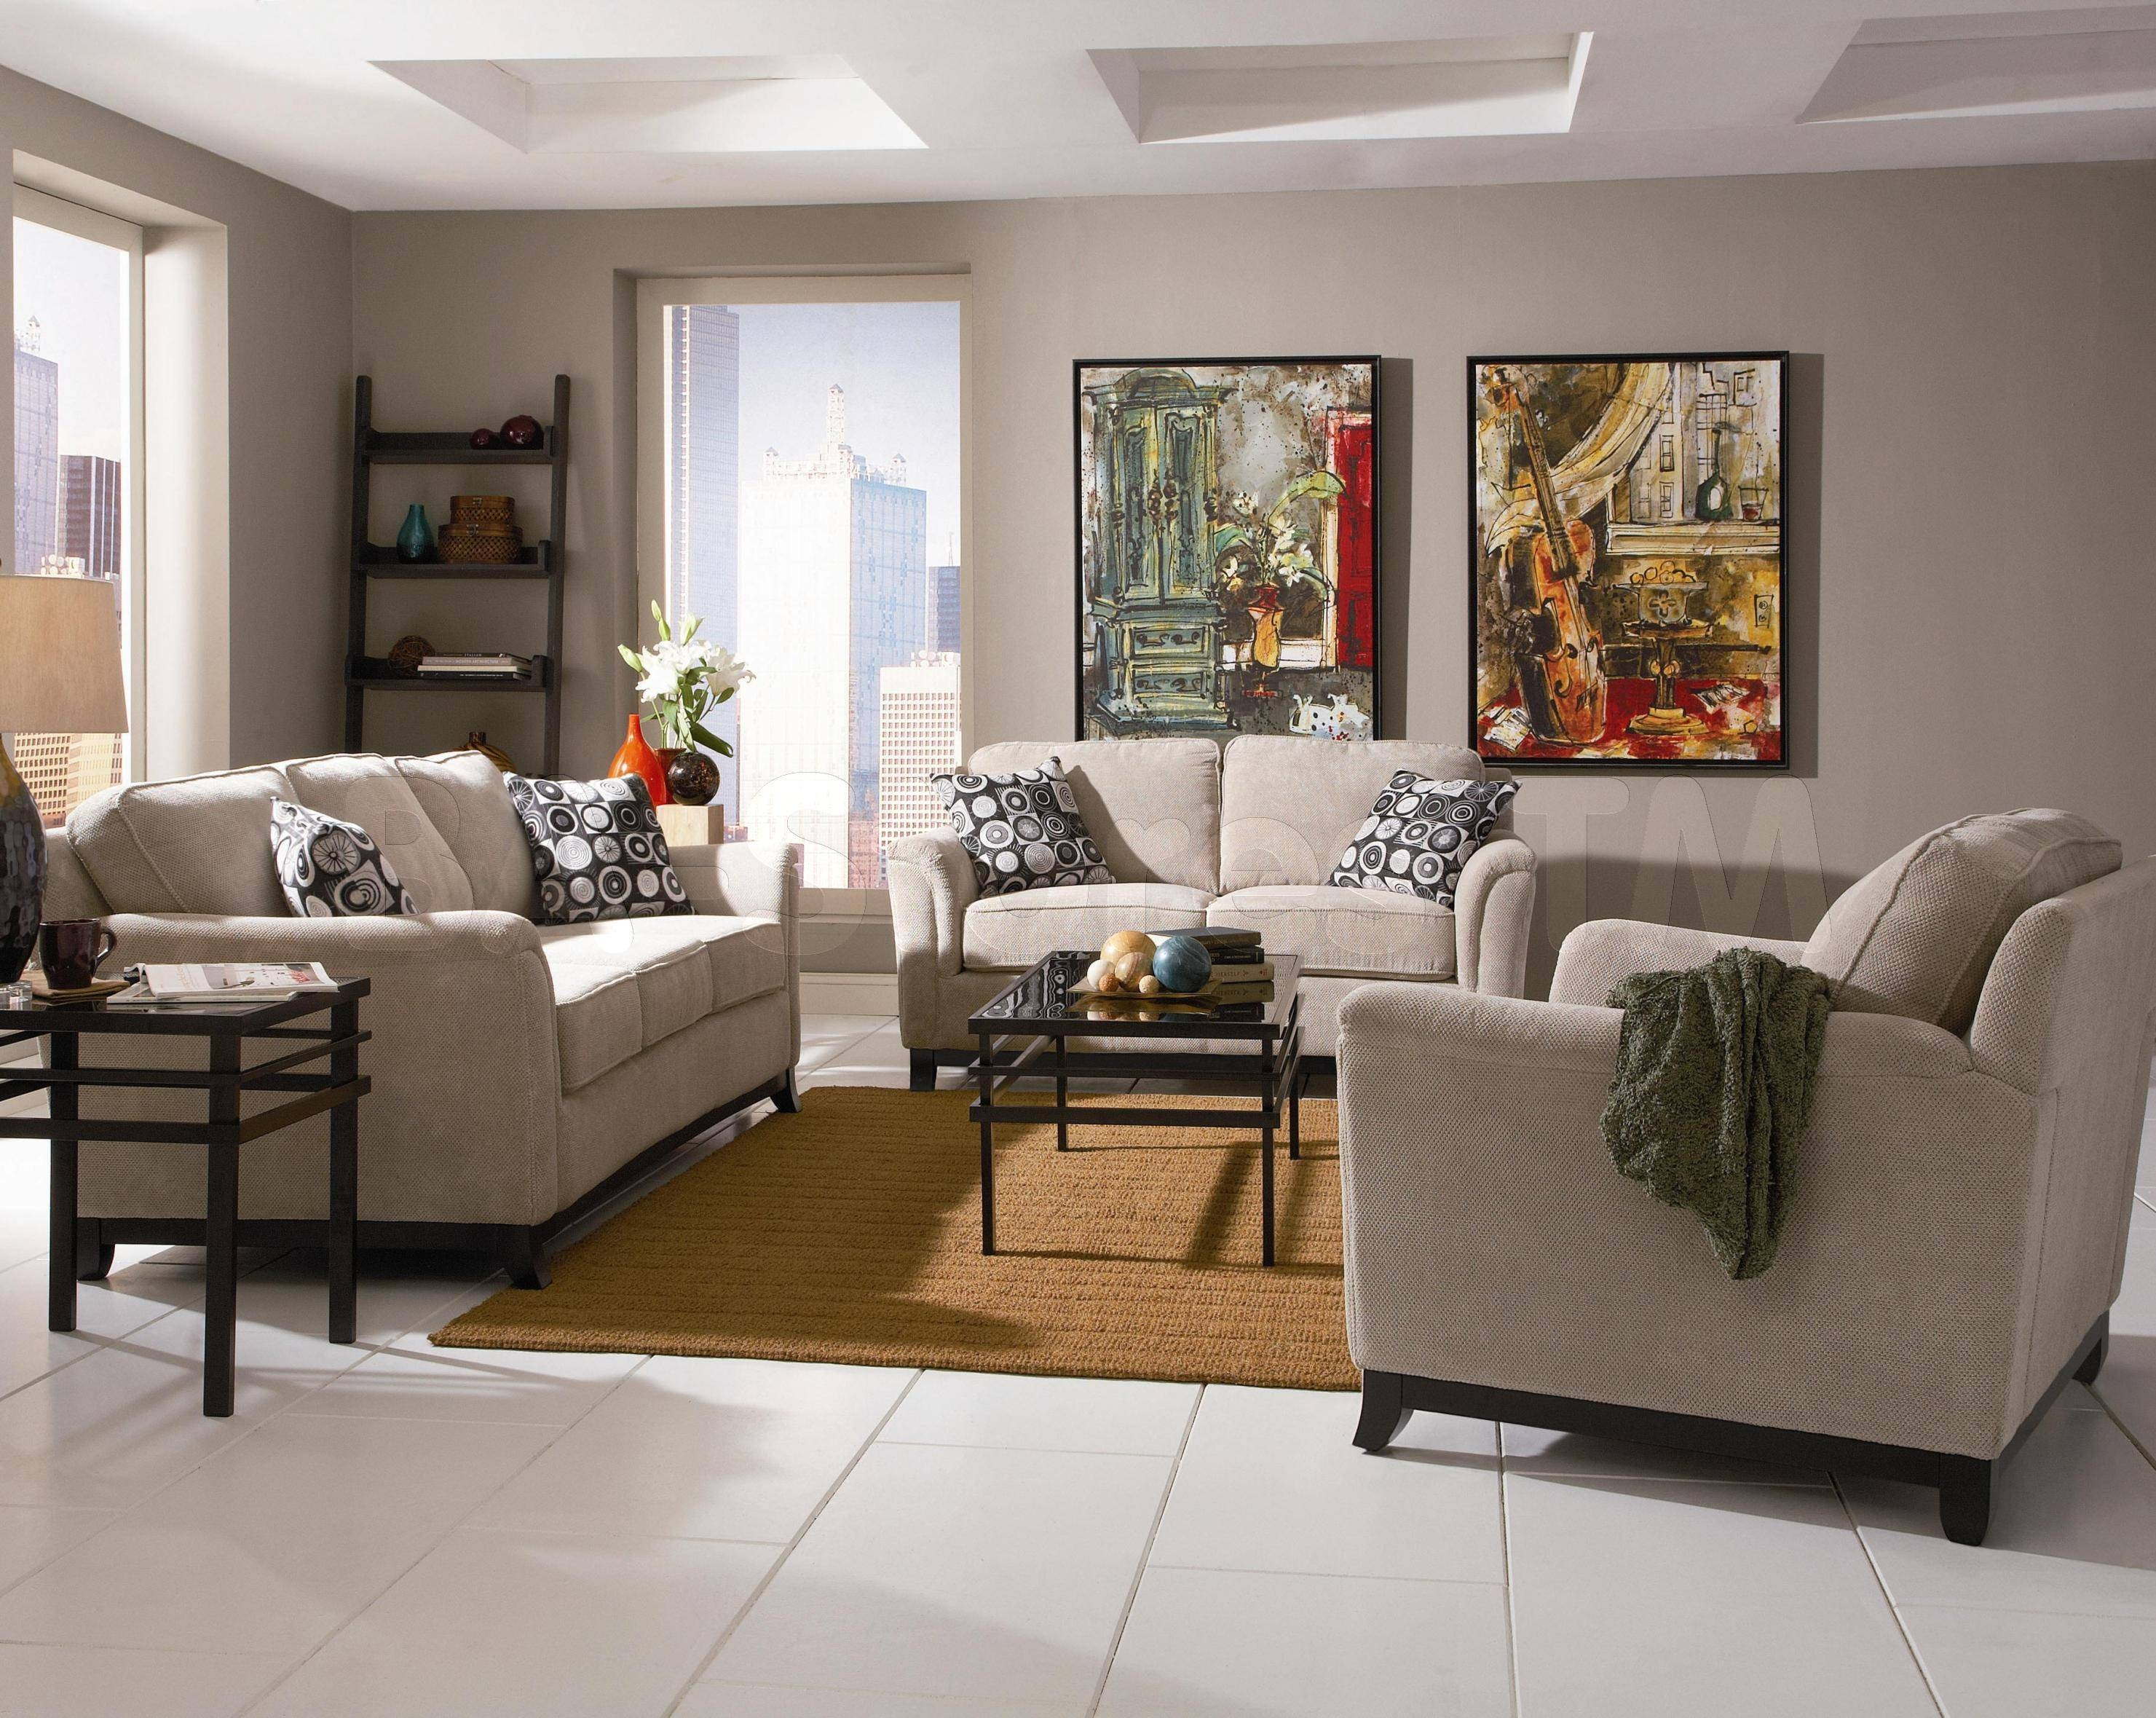 Lovely Sofa Loveseat Chair Arrangement 163636 375X281 U Shaped in Sofa Loveseat and Chairs (Image 14 of 30)